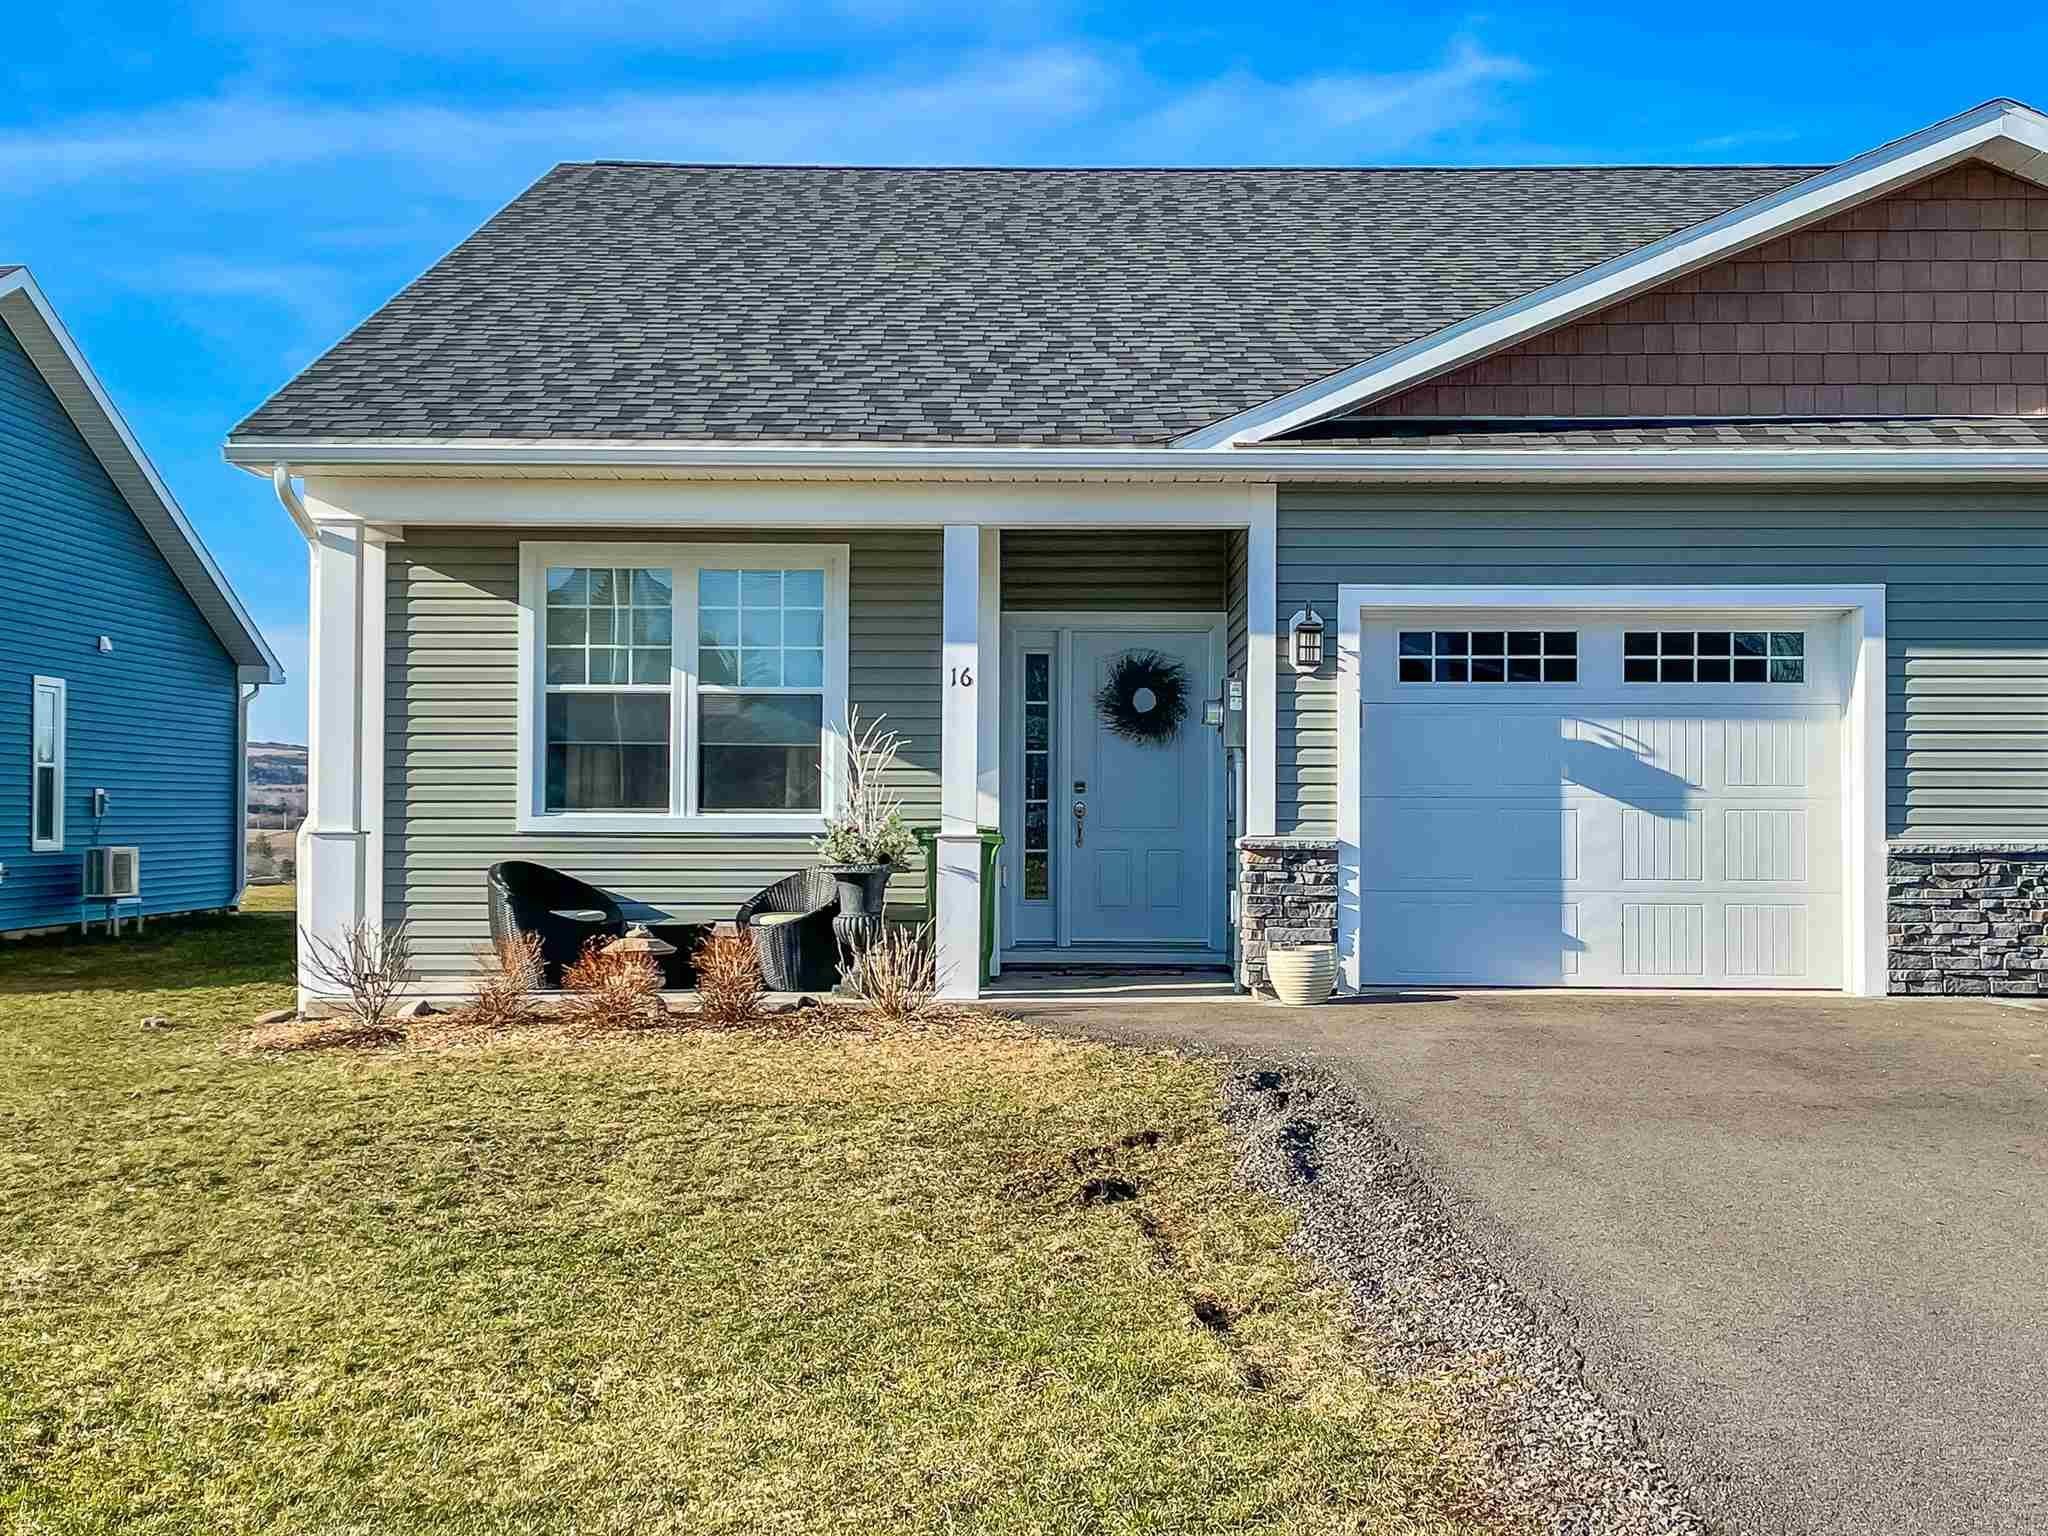 Main Photo: 16 Mackinnon Court in Kentville: 404-Kings County Residential for sale (Annapolis Valley)  : MLS®# 202107293